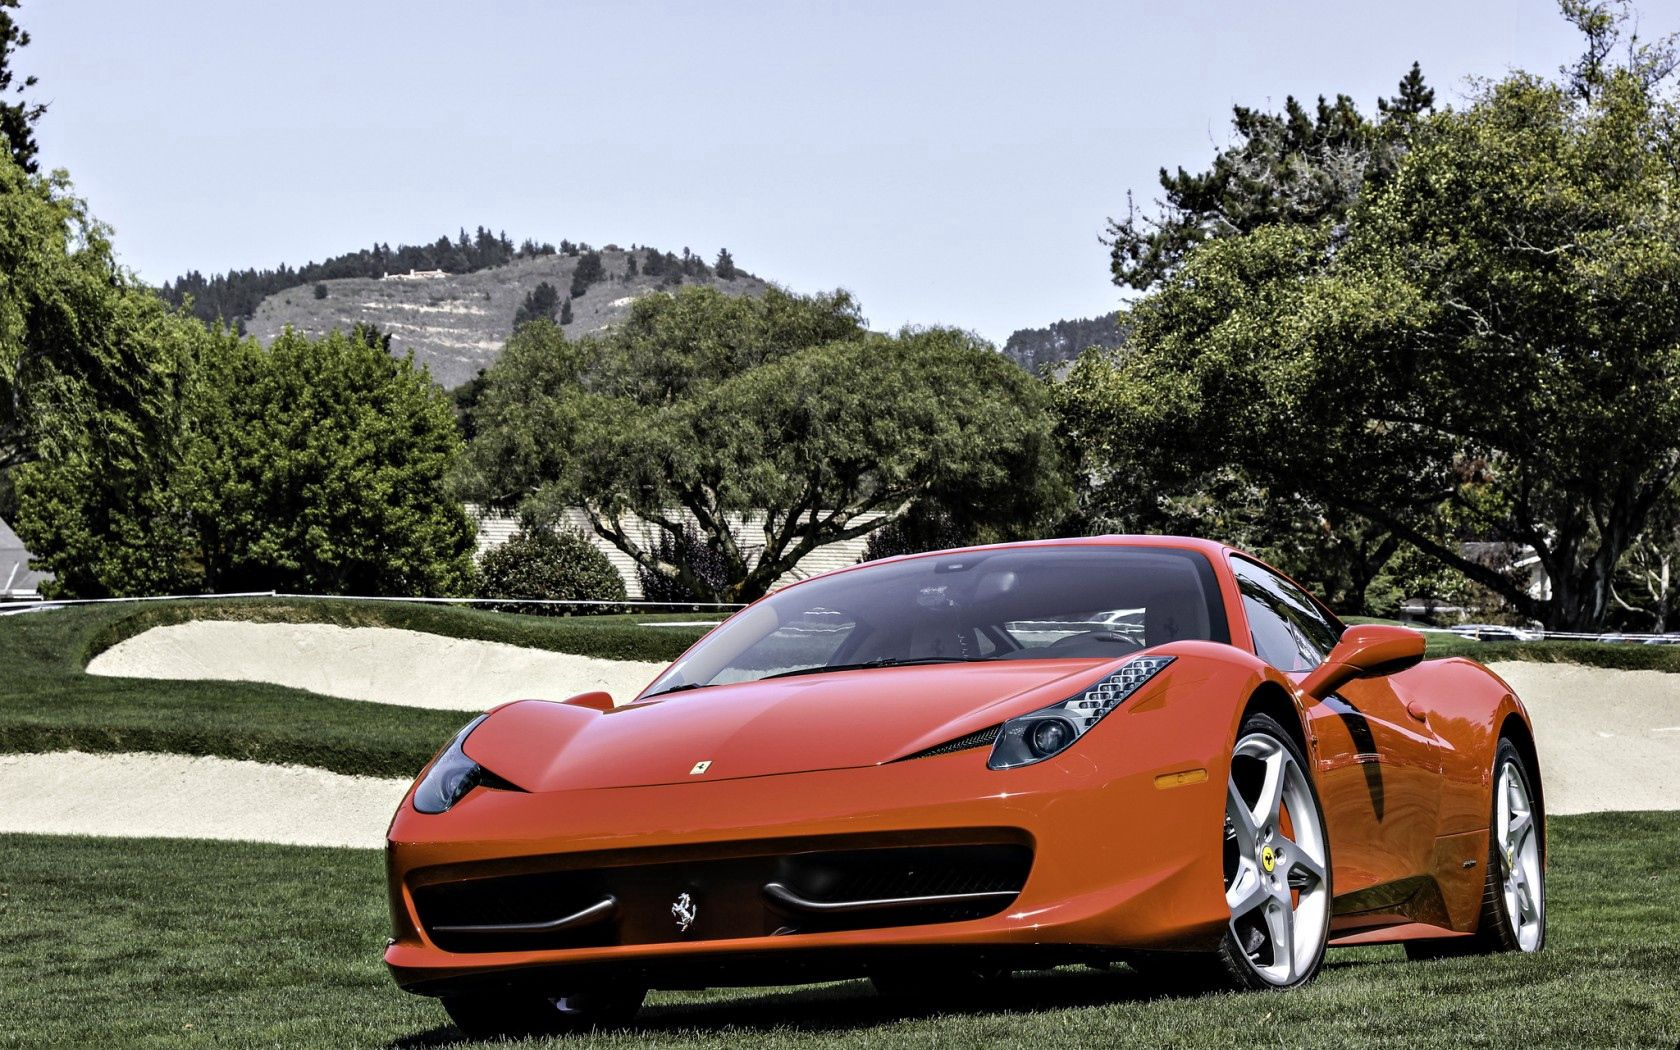 53425 download wallpaper Trees, Sky, Ferrari, Italy, Cars, Field screensavers and pictures for free